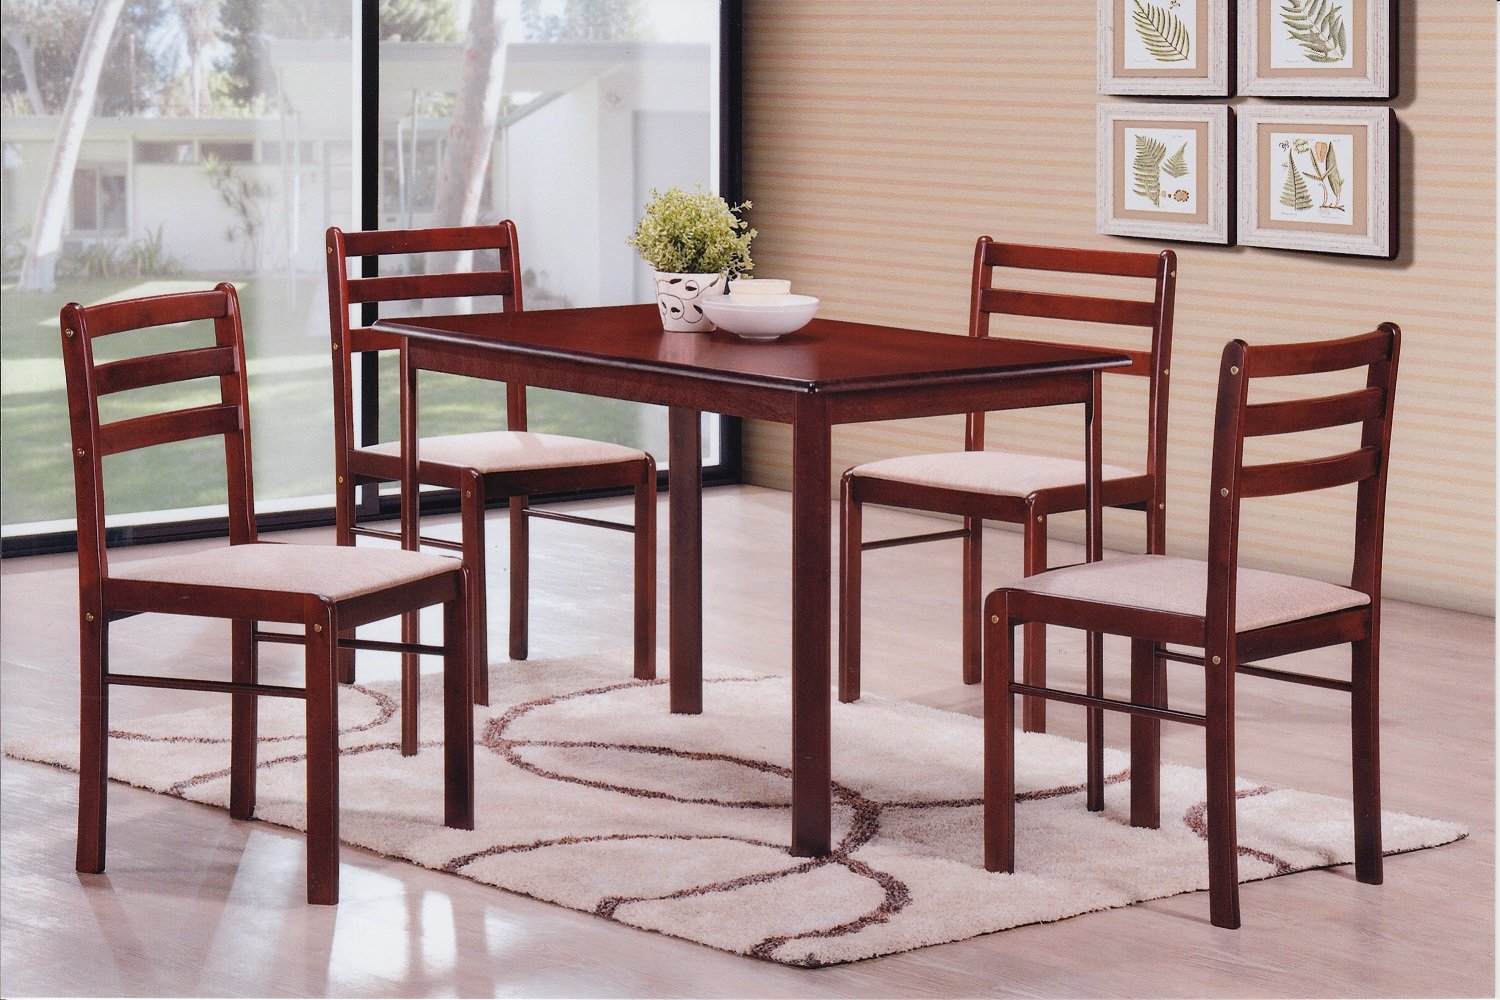 HODEDAH IMPORT Table and 4 Chairs Dinning Set - Mahogany